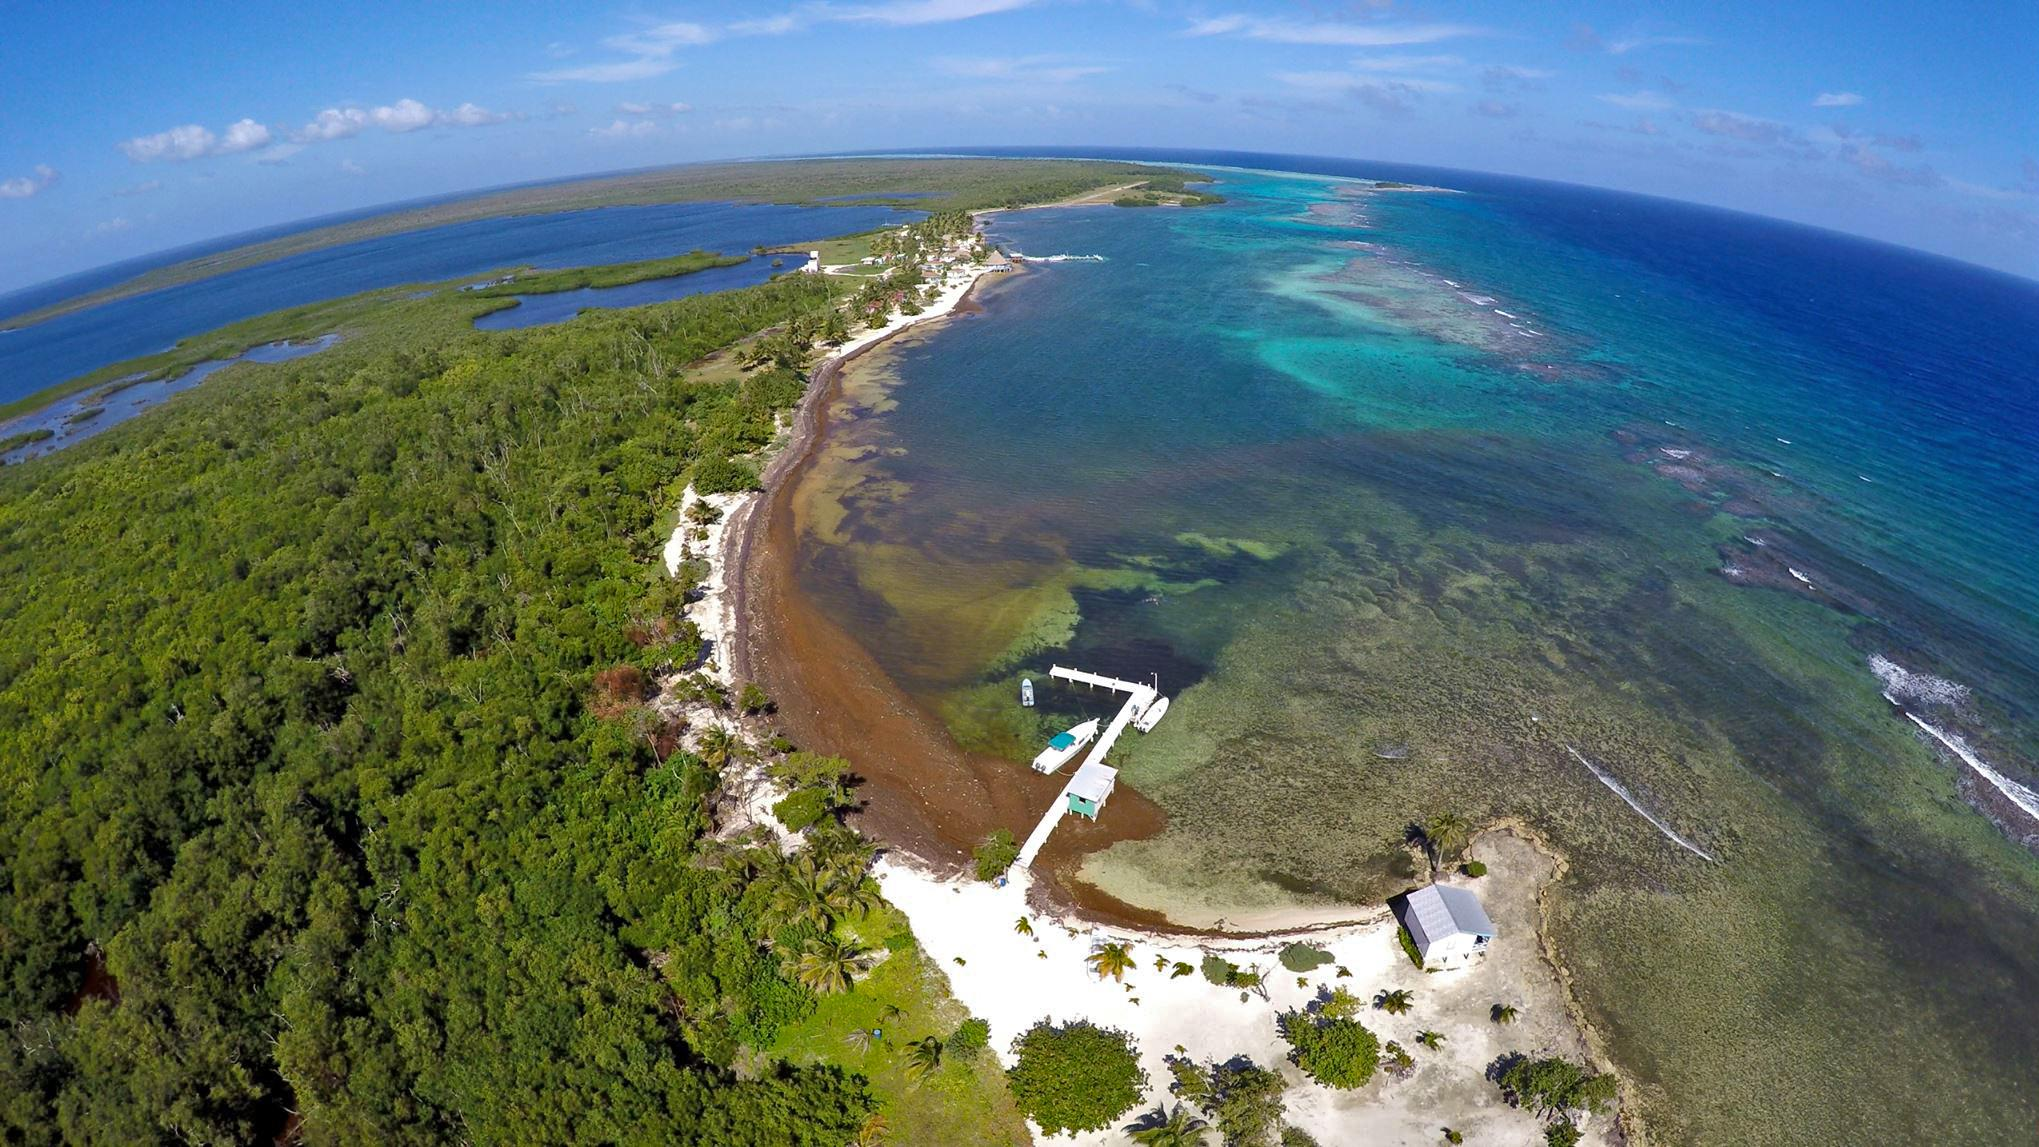 One of the first images of Blackbird Caye captured by a drone that is being used in dolphin research. © Eric Ramos